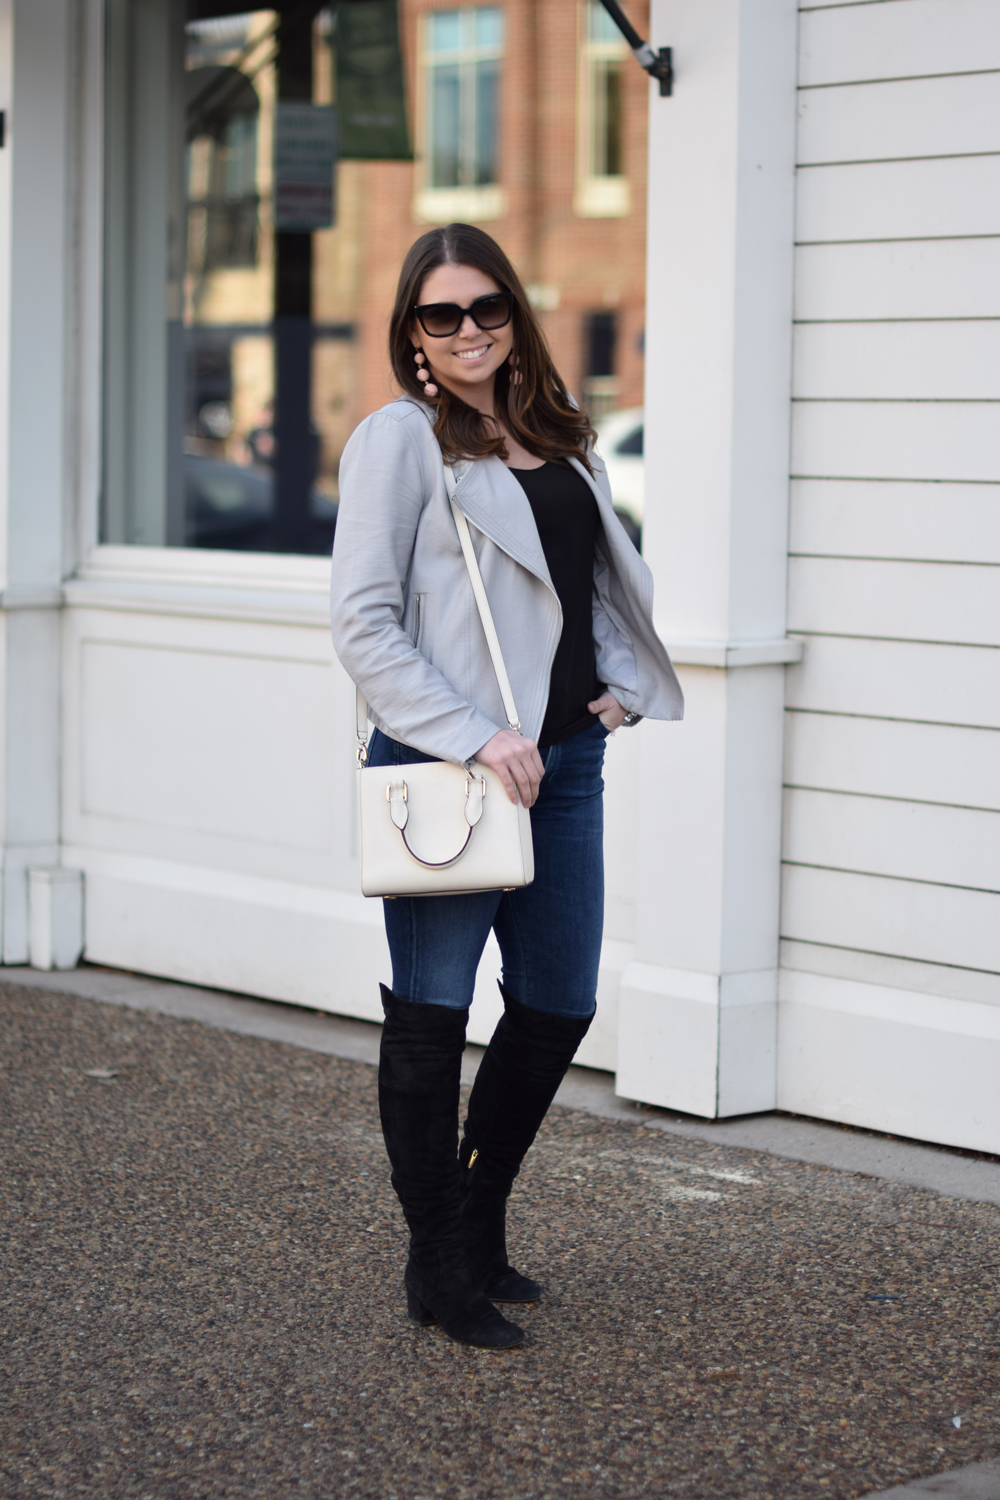 Best light weight jacket for transitioning into spring.